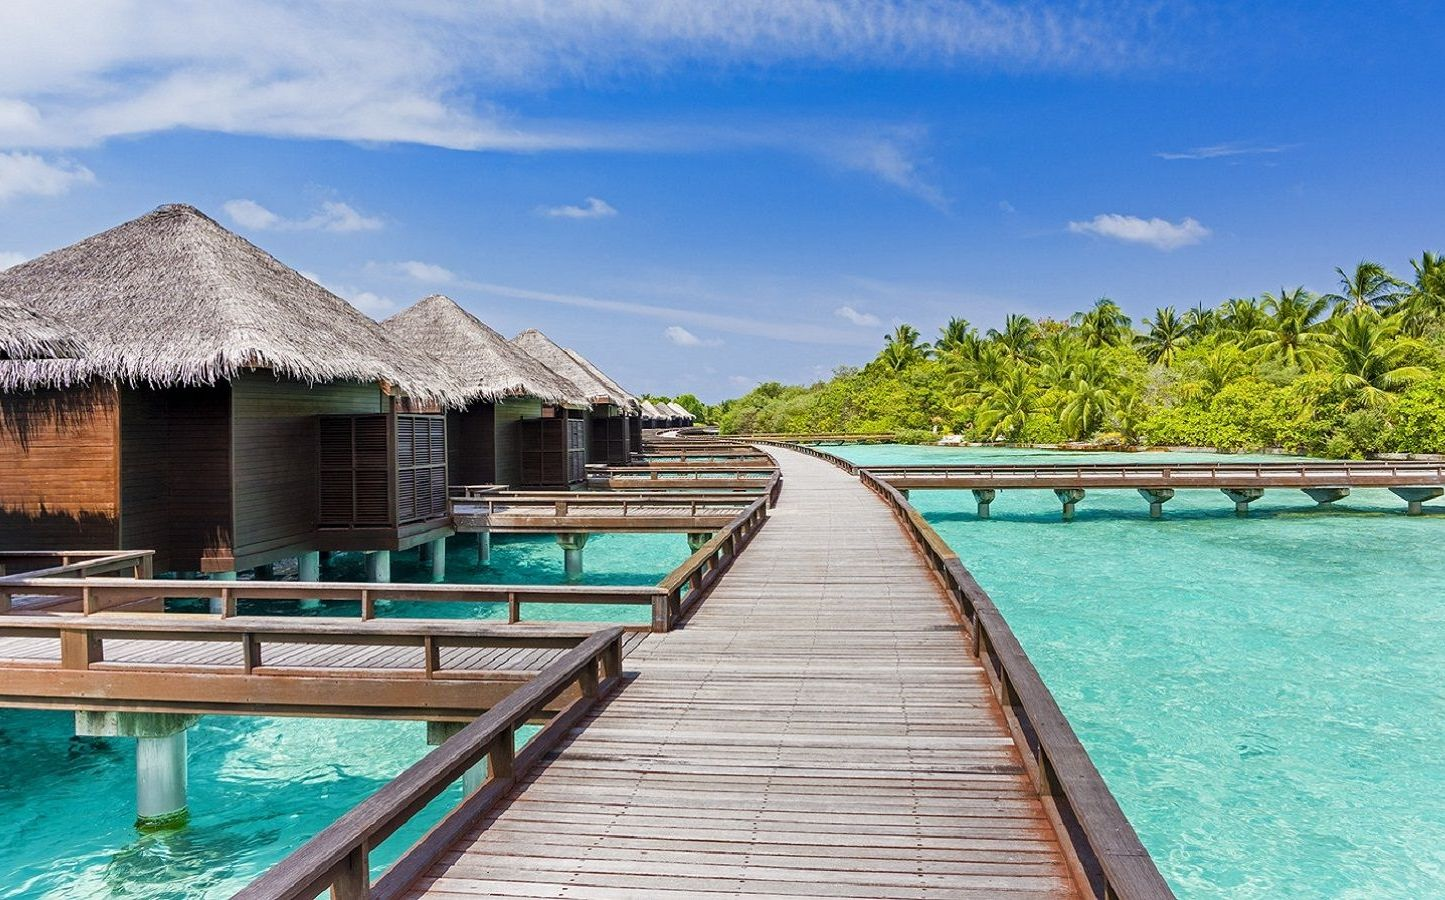 Stay in water Bungalow in the Maldives wittyperson.com